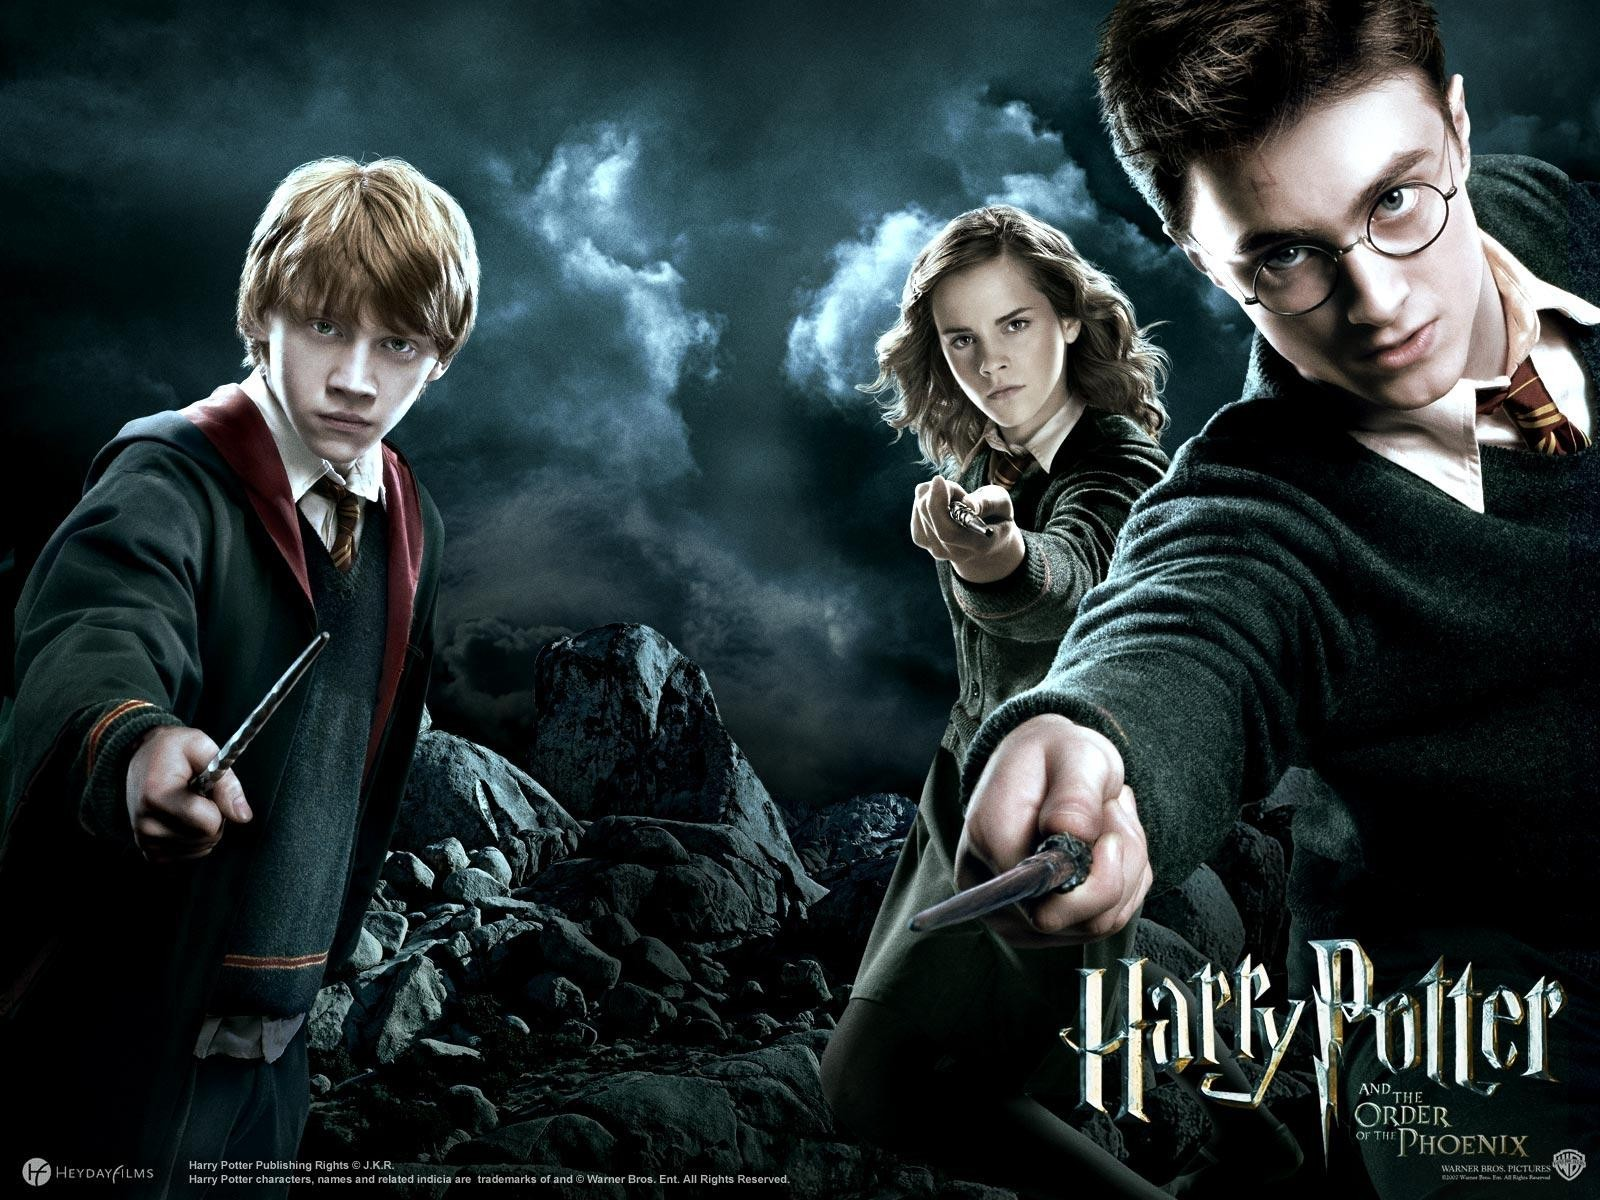 http://3.bp.blogspot.com/-8dPl4_V0D0g/Thb8YeqgkxI/AAAAAAAAC70/WrK1BwV_9a4/s1600/Harry+Potter+and+the+Deathly+Hallows%252C+Part+2+2011+hollywood+movie+watch+online.jpg